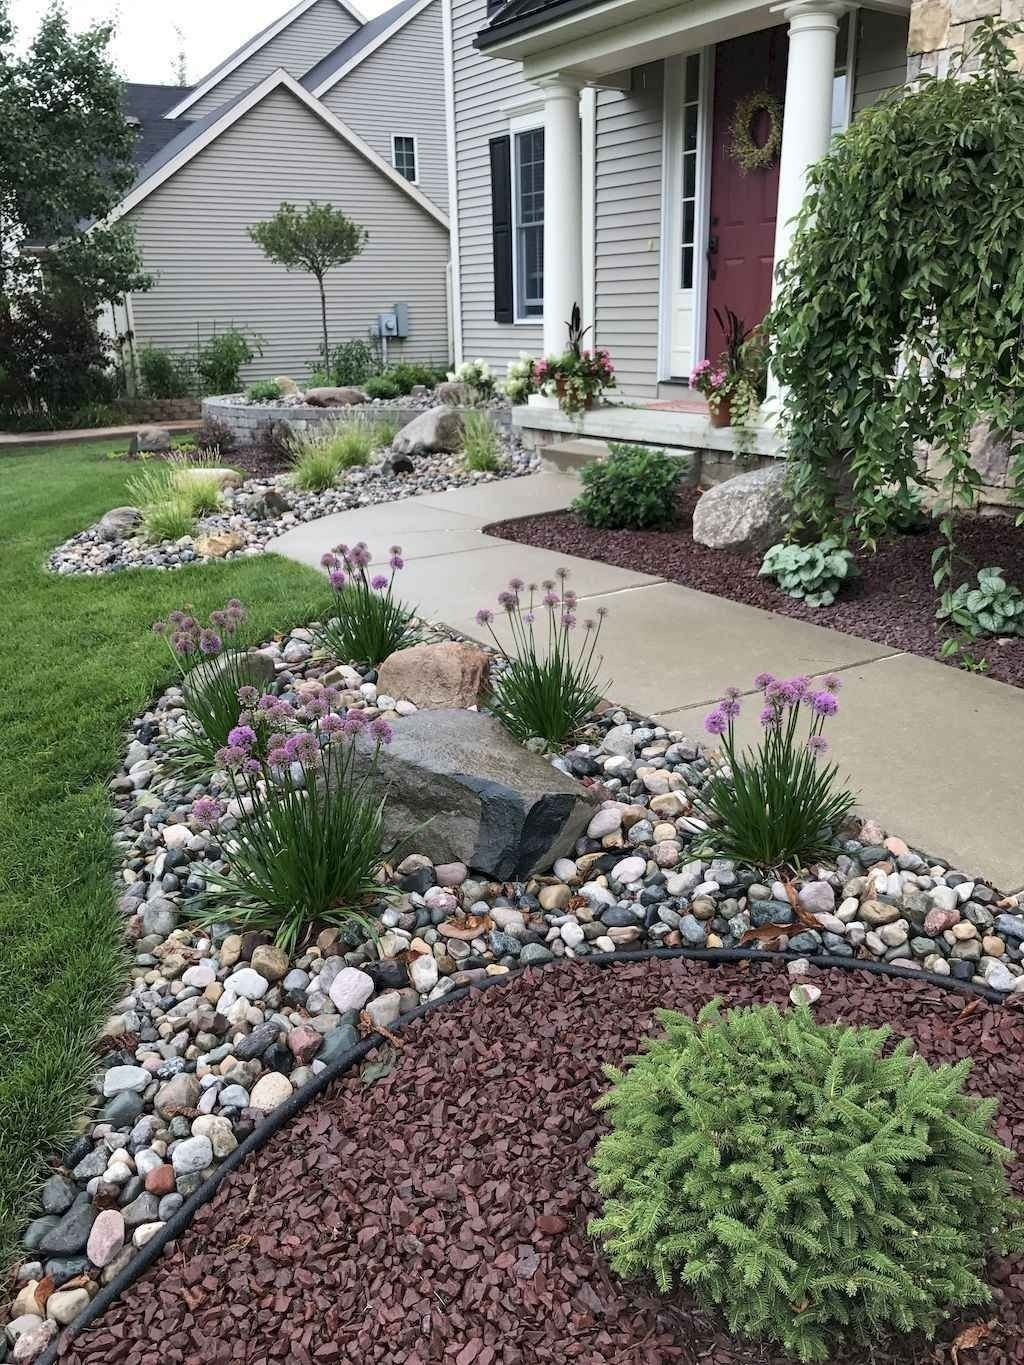 Popular Front Yard Landscaping Ideas With Porch 52 In 2020 Front Yard Landscaping Design Rock Garden Design Rock Garden Landscaping